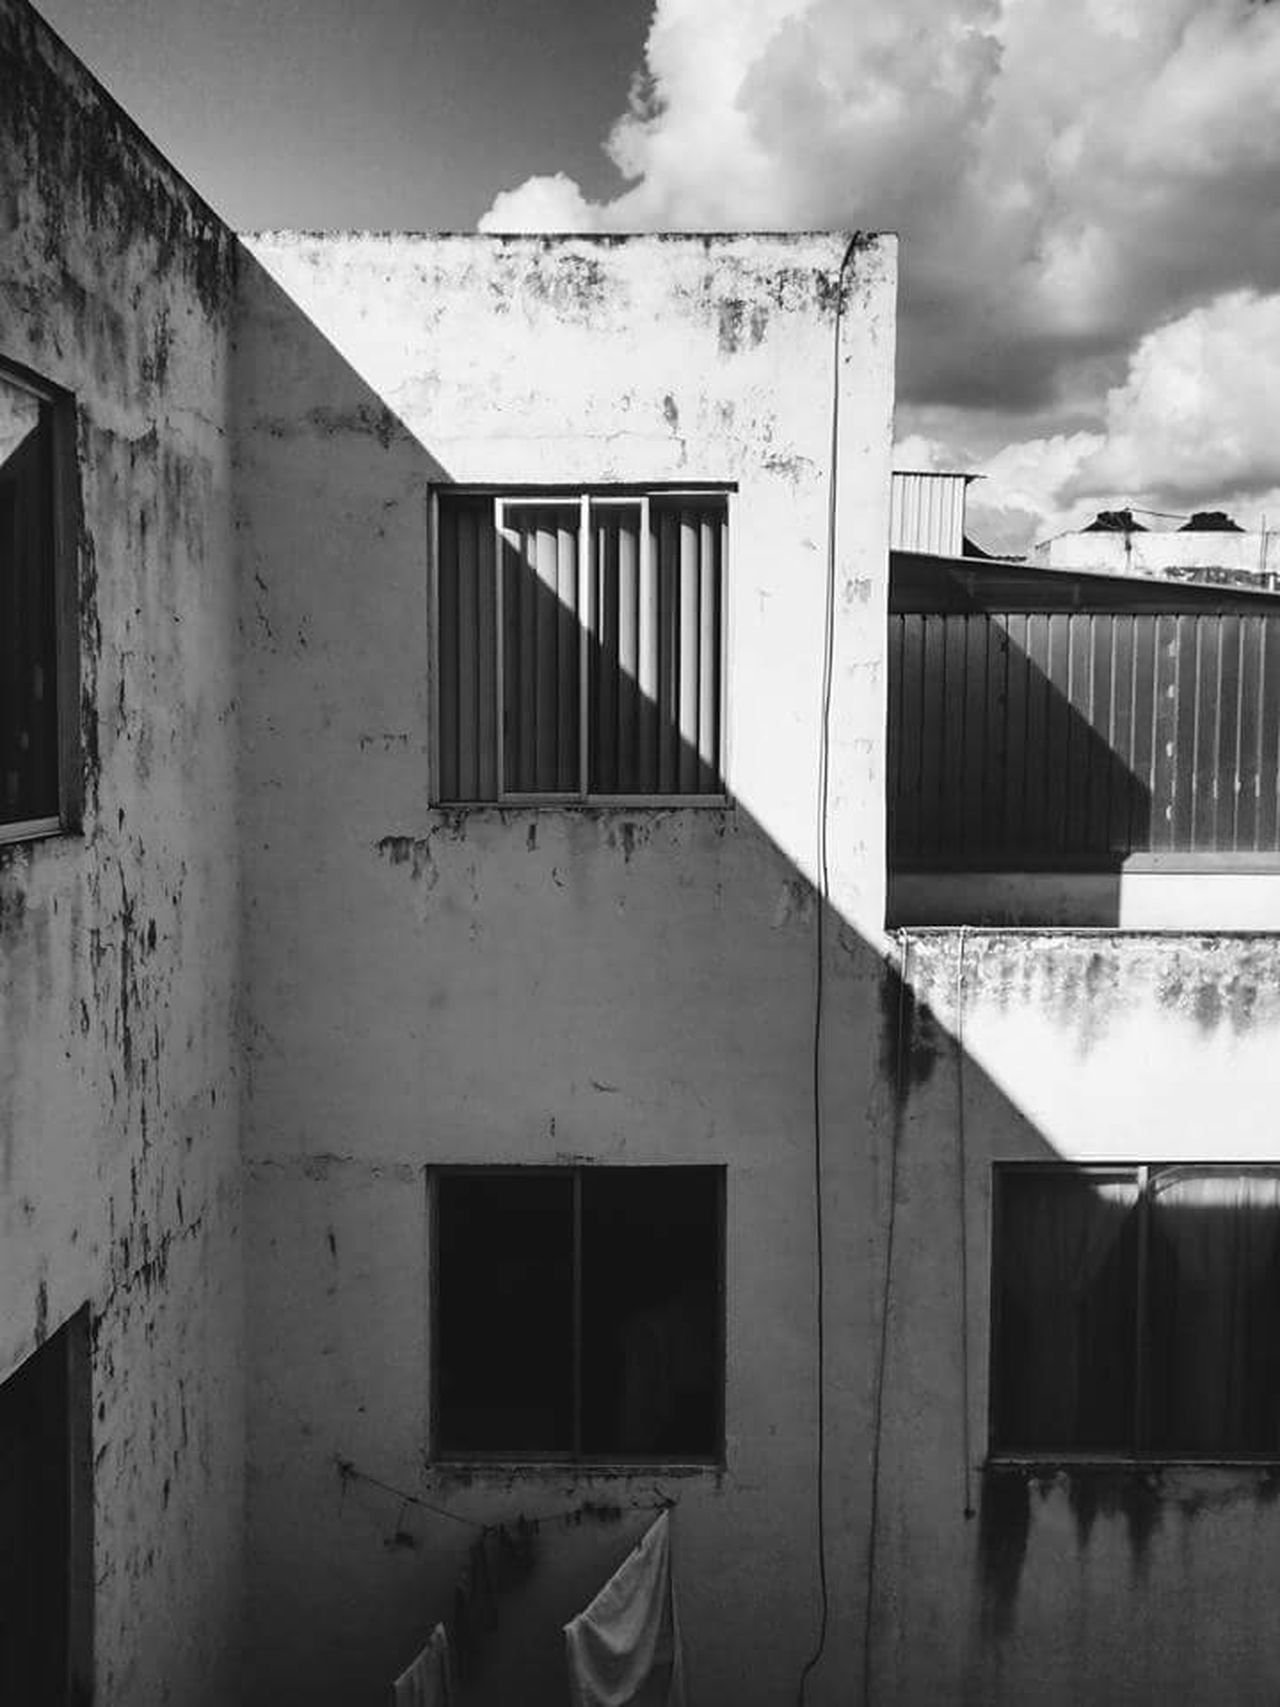 Architecture Cloud - Sky Sky Photography Mexicanphotographer Black And White Blackandwhite Photography Lifestyles